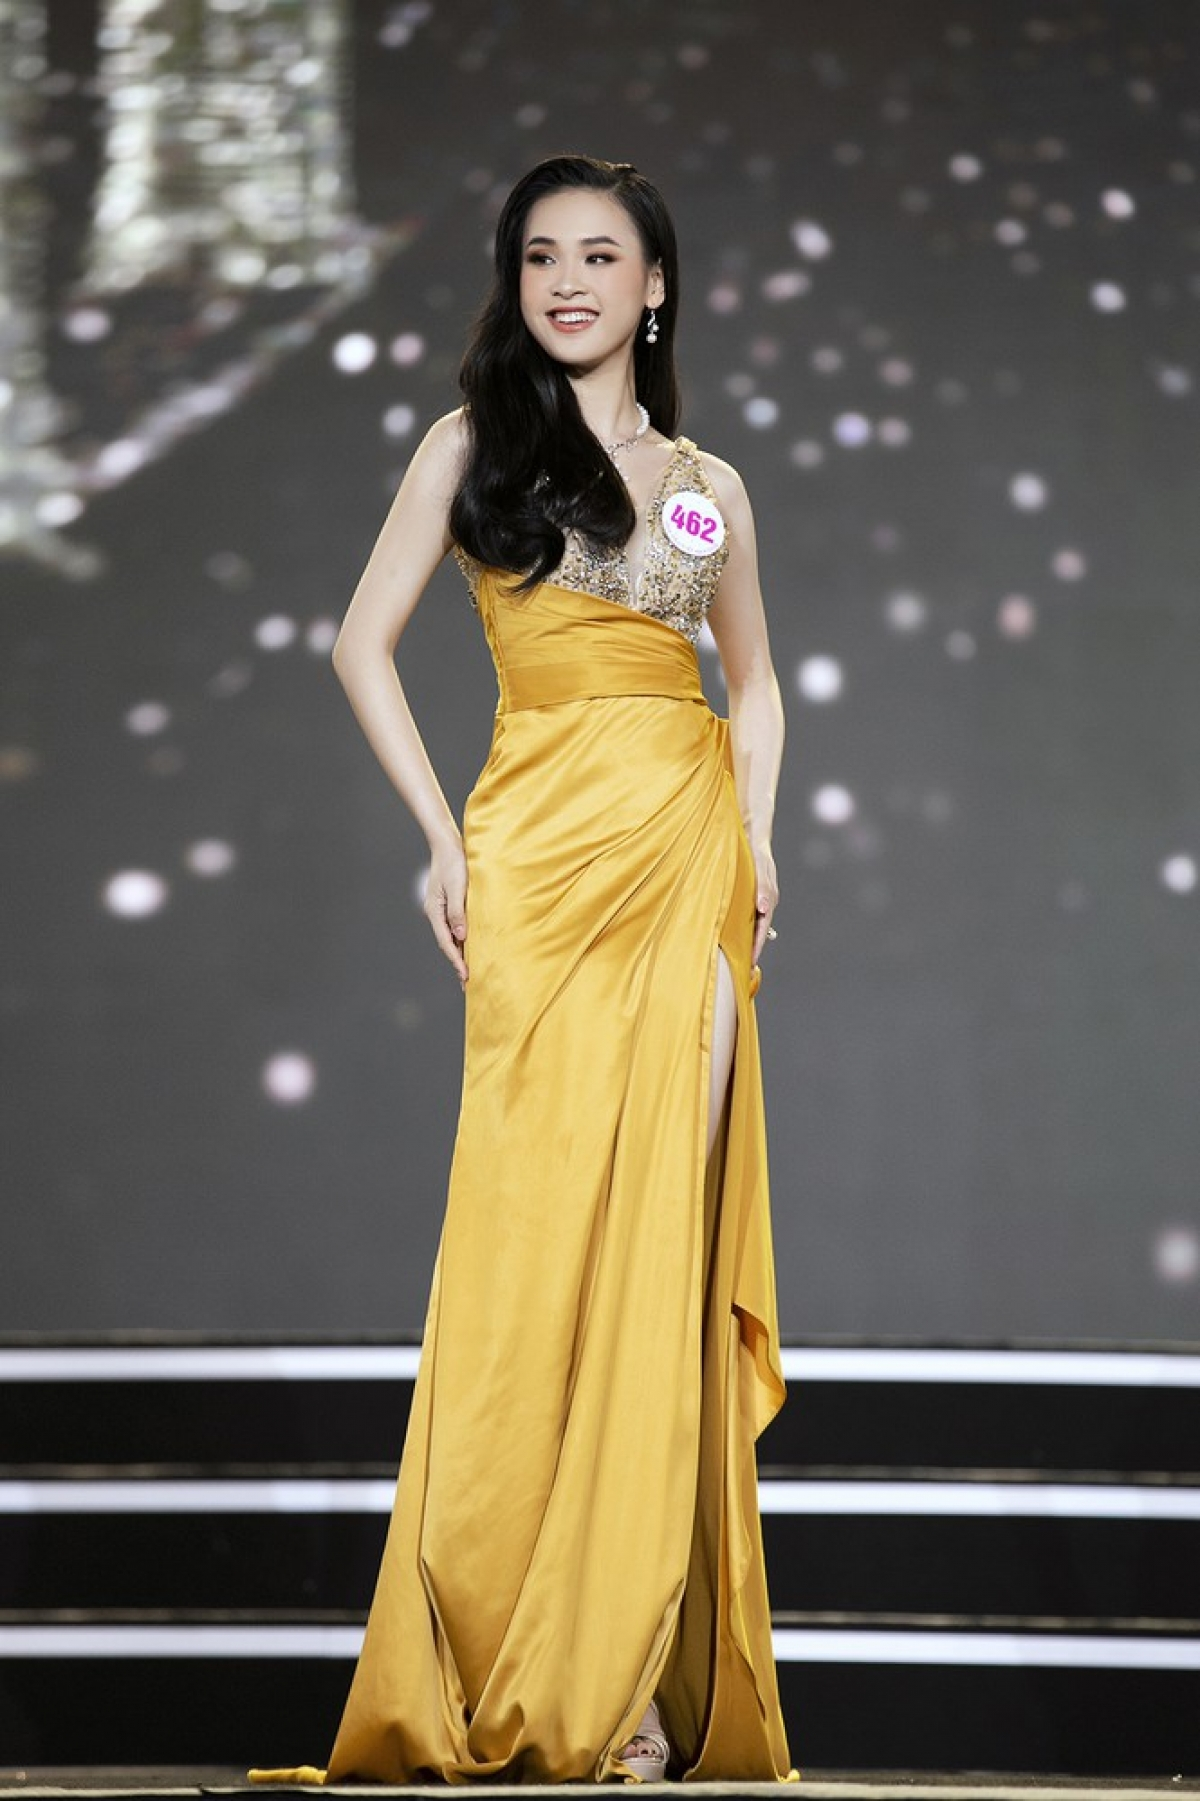 Nguyen Thao Vi from Hoa Binh province stands at 1.66 metres tall and measures 78-62–84.